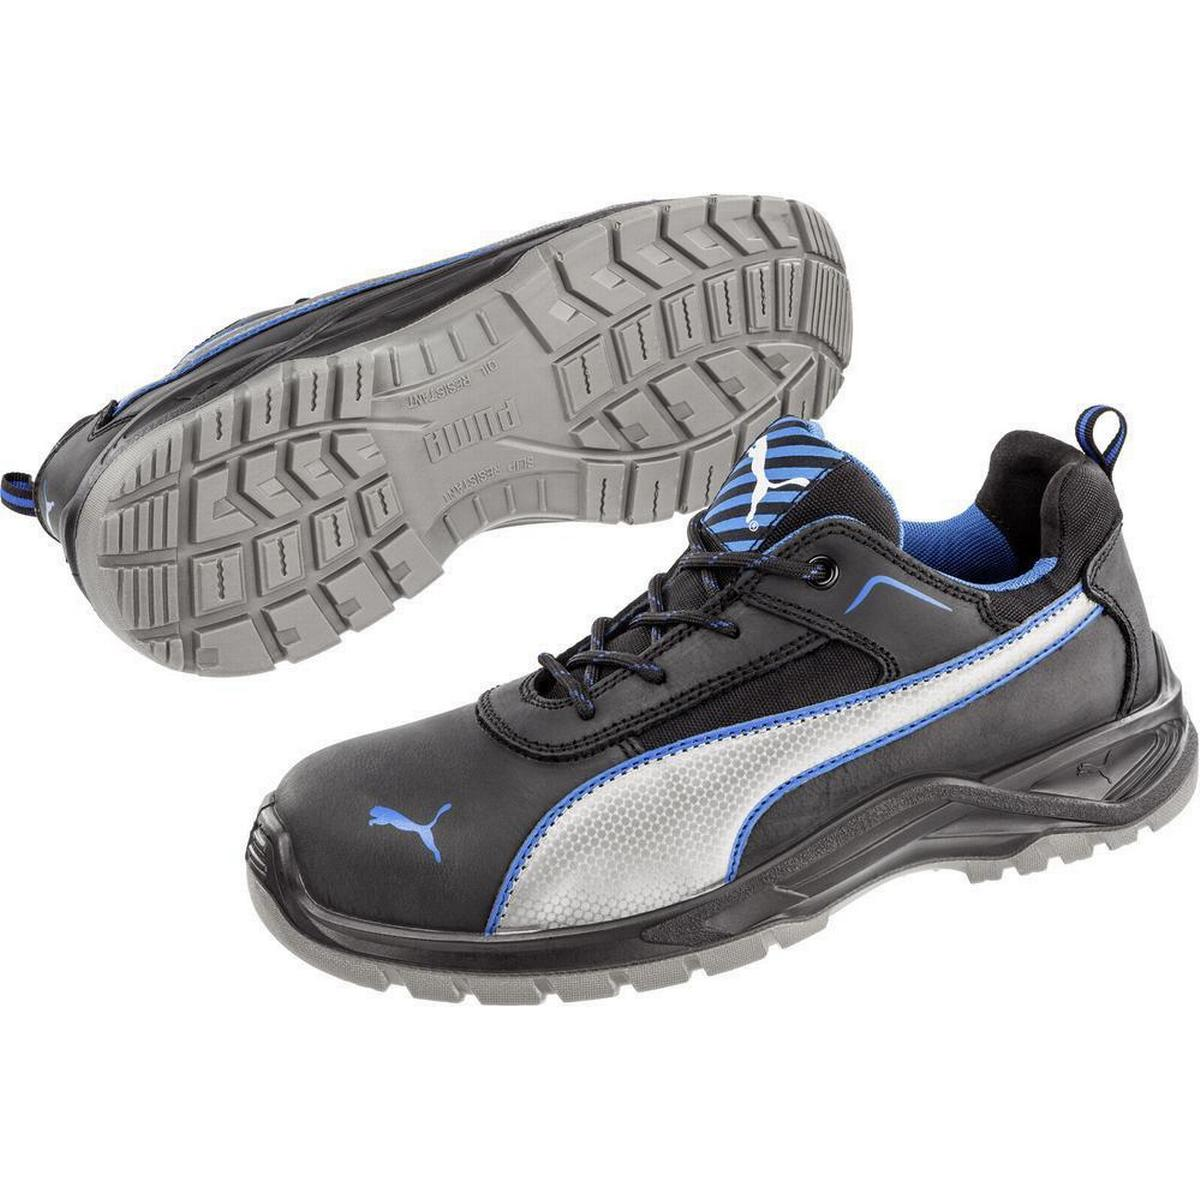 Puma Safety S1P HRO Motion Protect (890493_01)